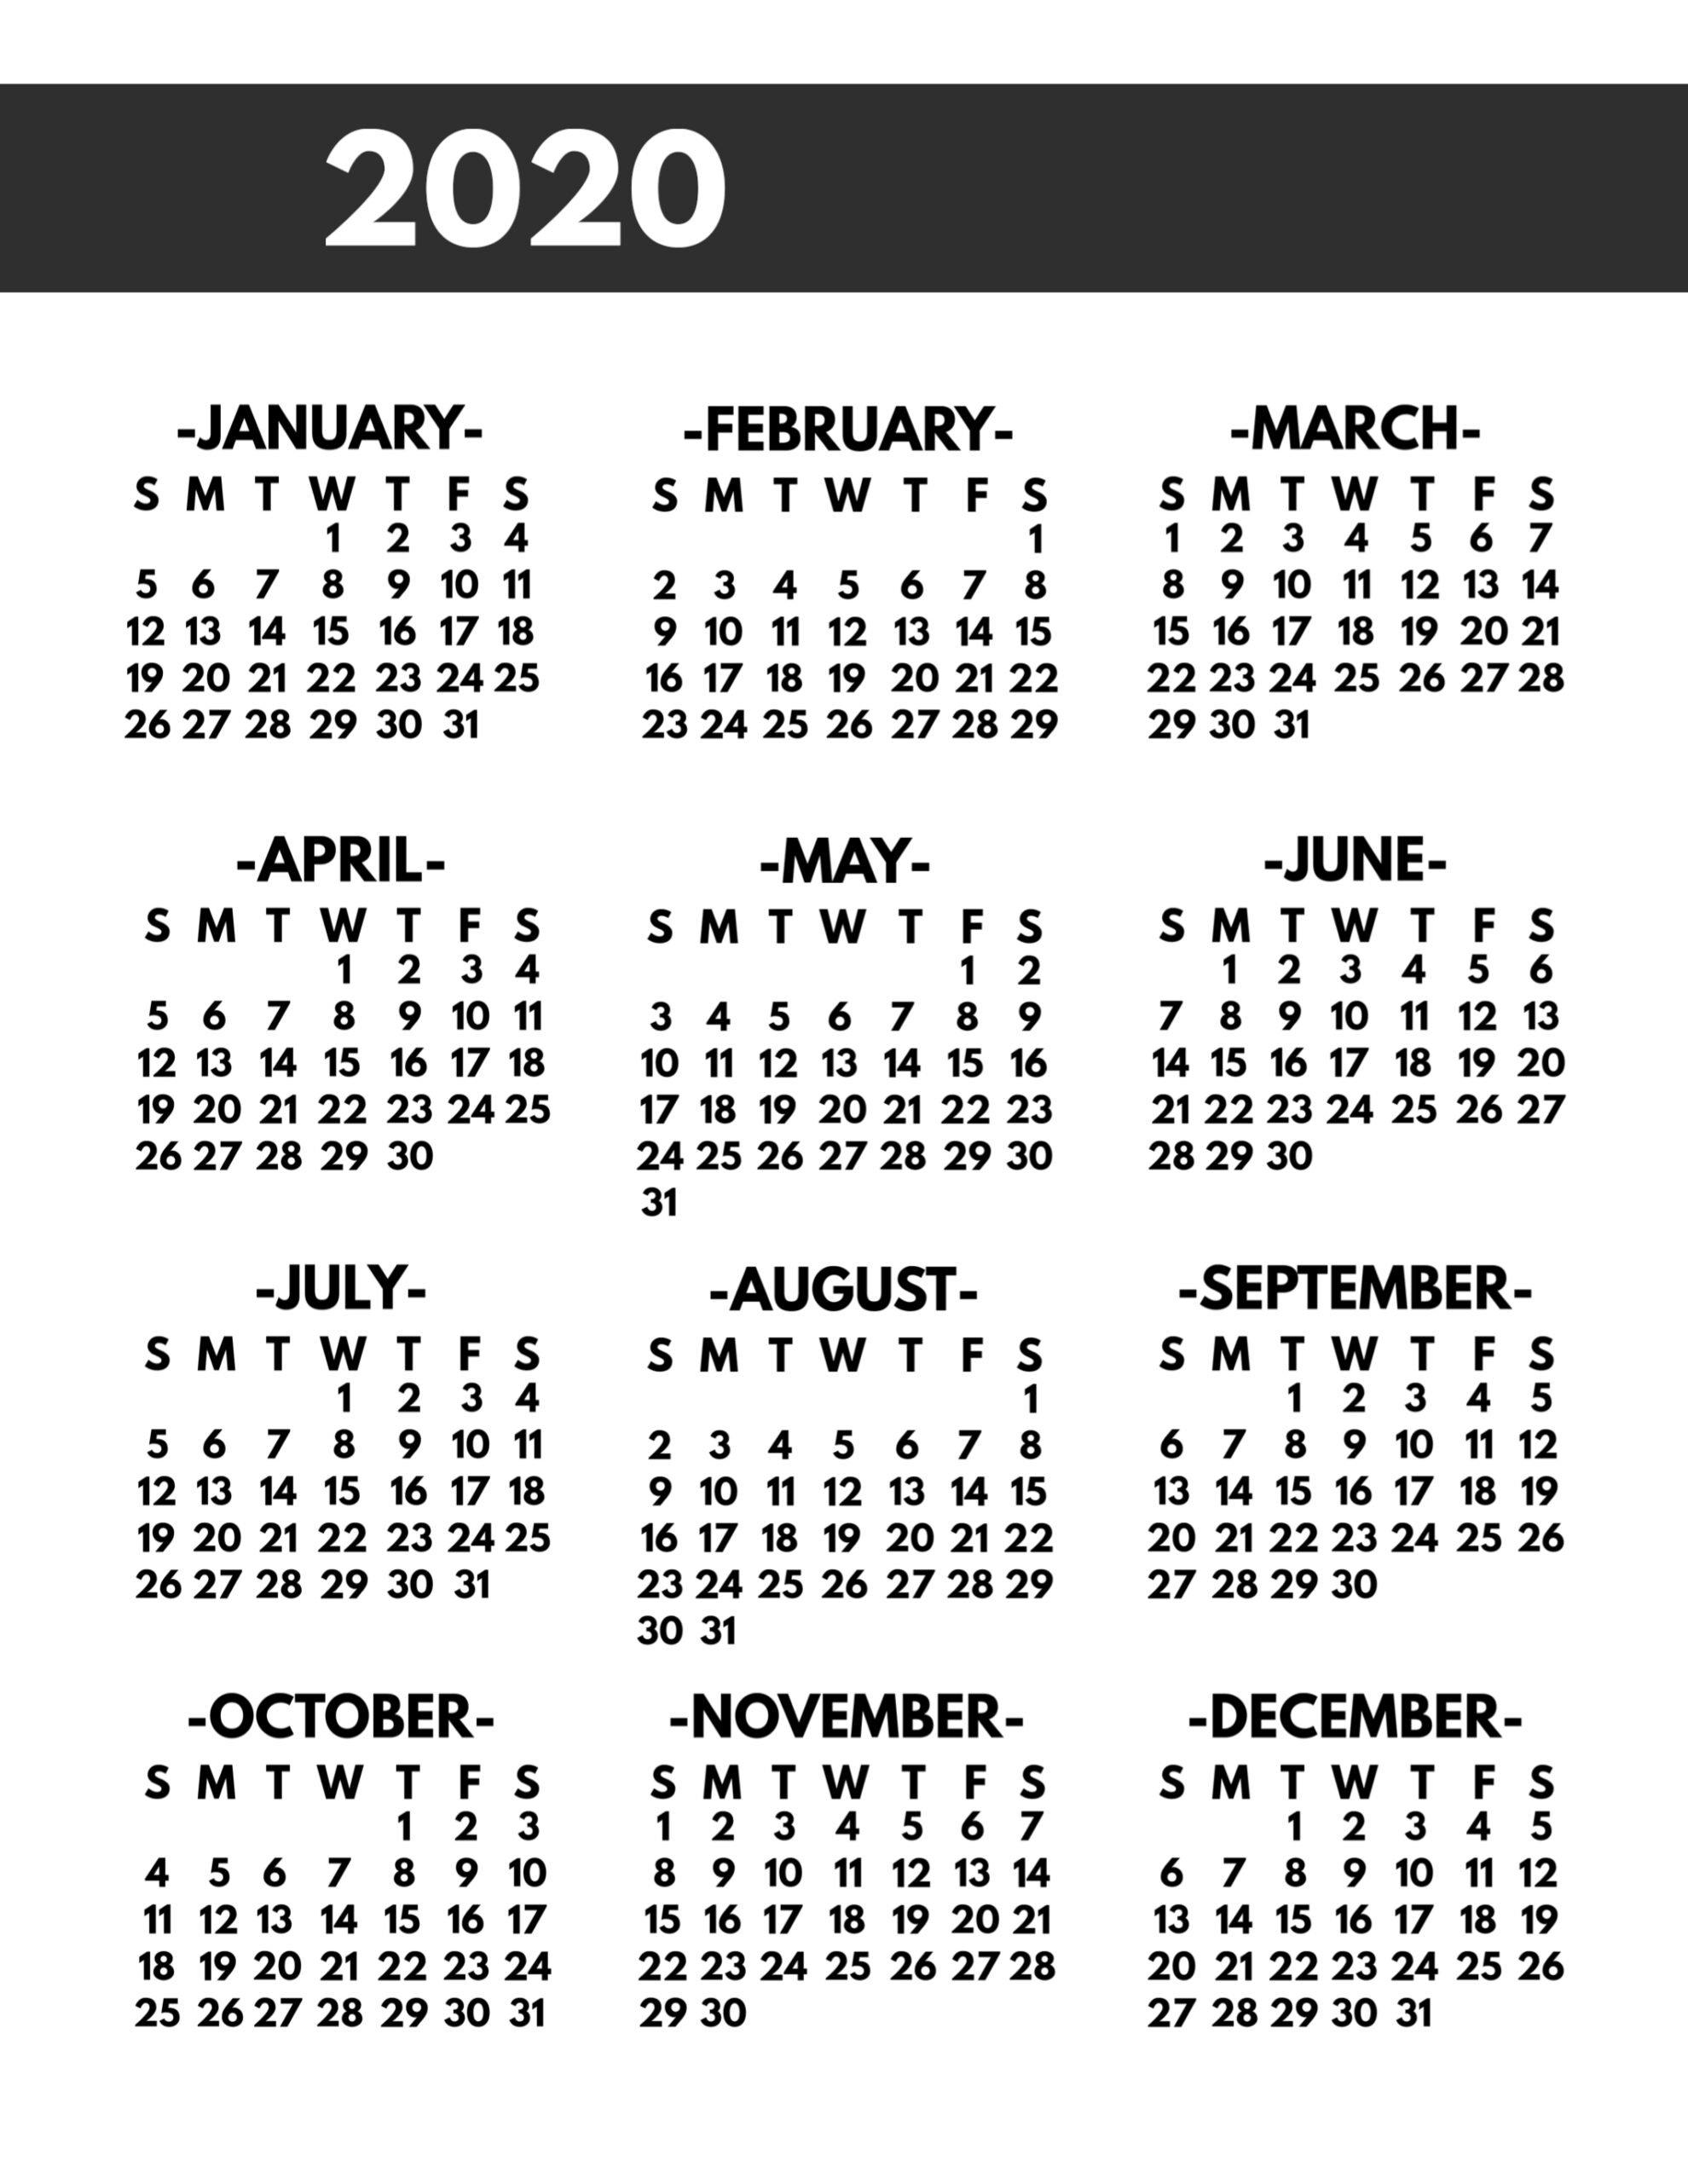 2020 Printable One Page Year At A Glance Calendar - Paper 1 Page 8.5 By 11 With 2 Years Calendar